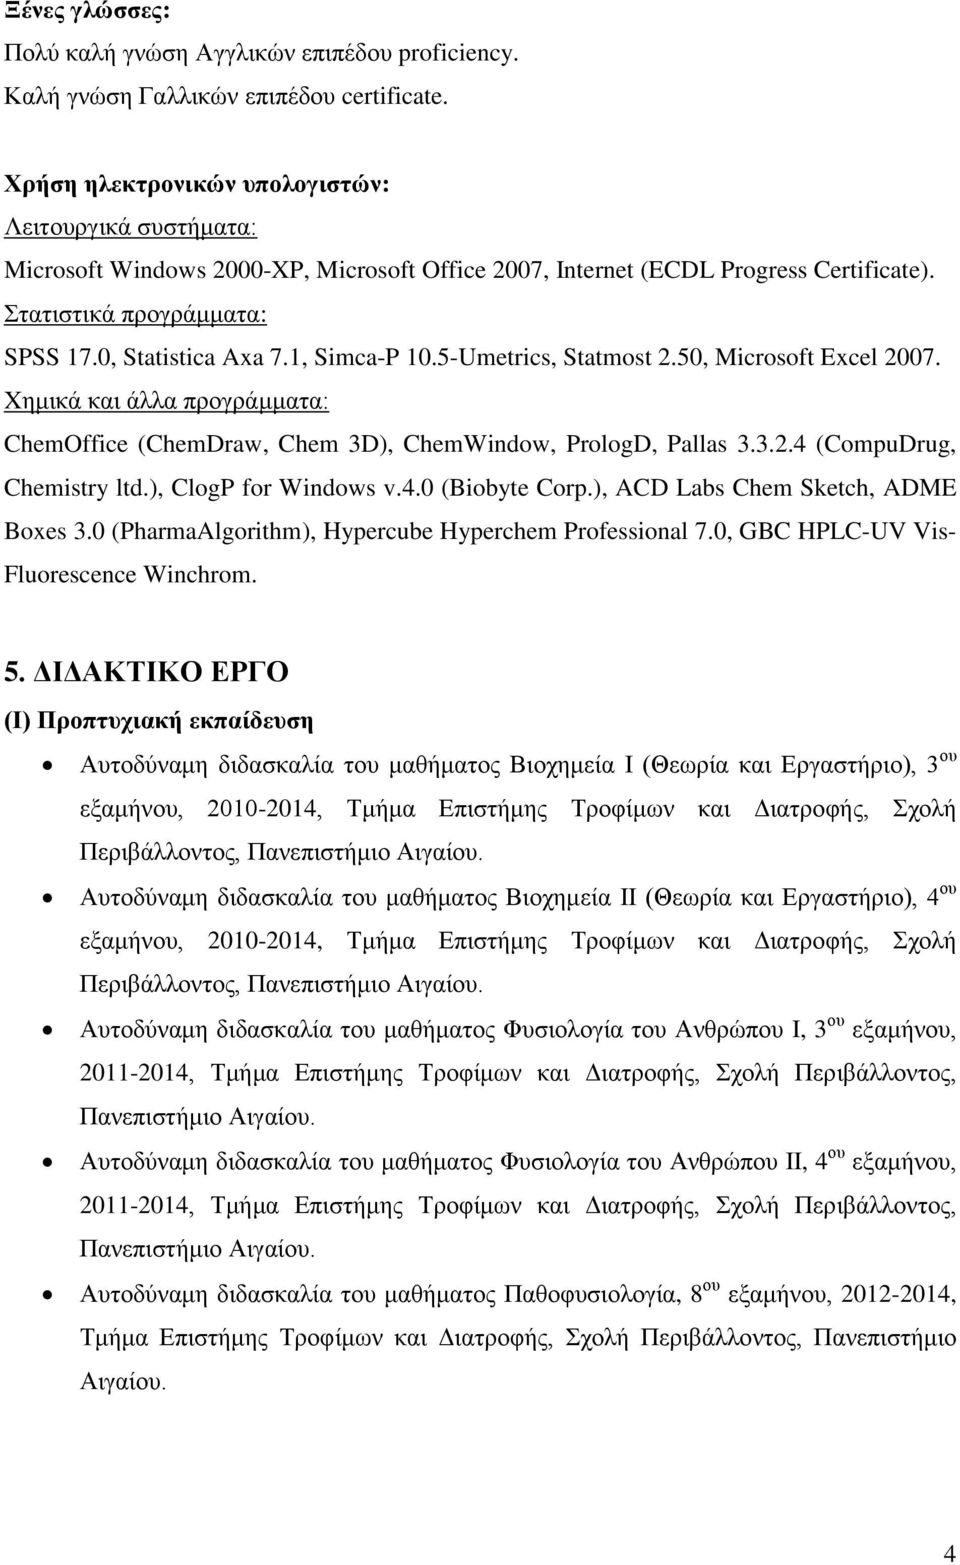 1, Simca-P 10.5-Umetrics, Statmost 2.50, Microsoft Excel 2007. Xεκηθά θαη άιια πξνγξάκκαηα: ChemOffice (ChemDraw, Chem 3D), ChemWindow, PrologD, Pallas 3.3.2.4 (CompuDrug, Chemistry ltd.